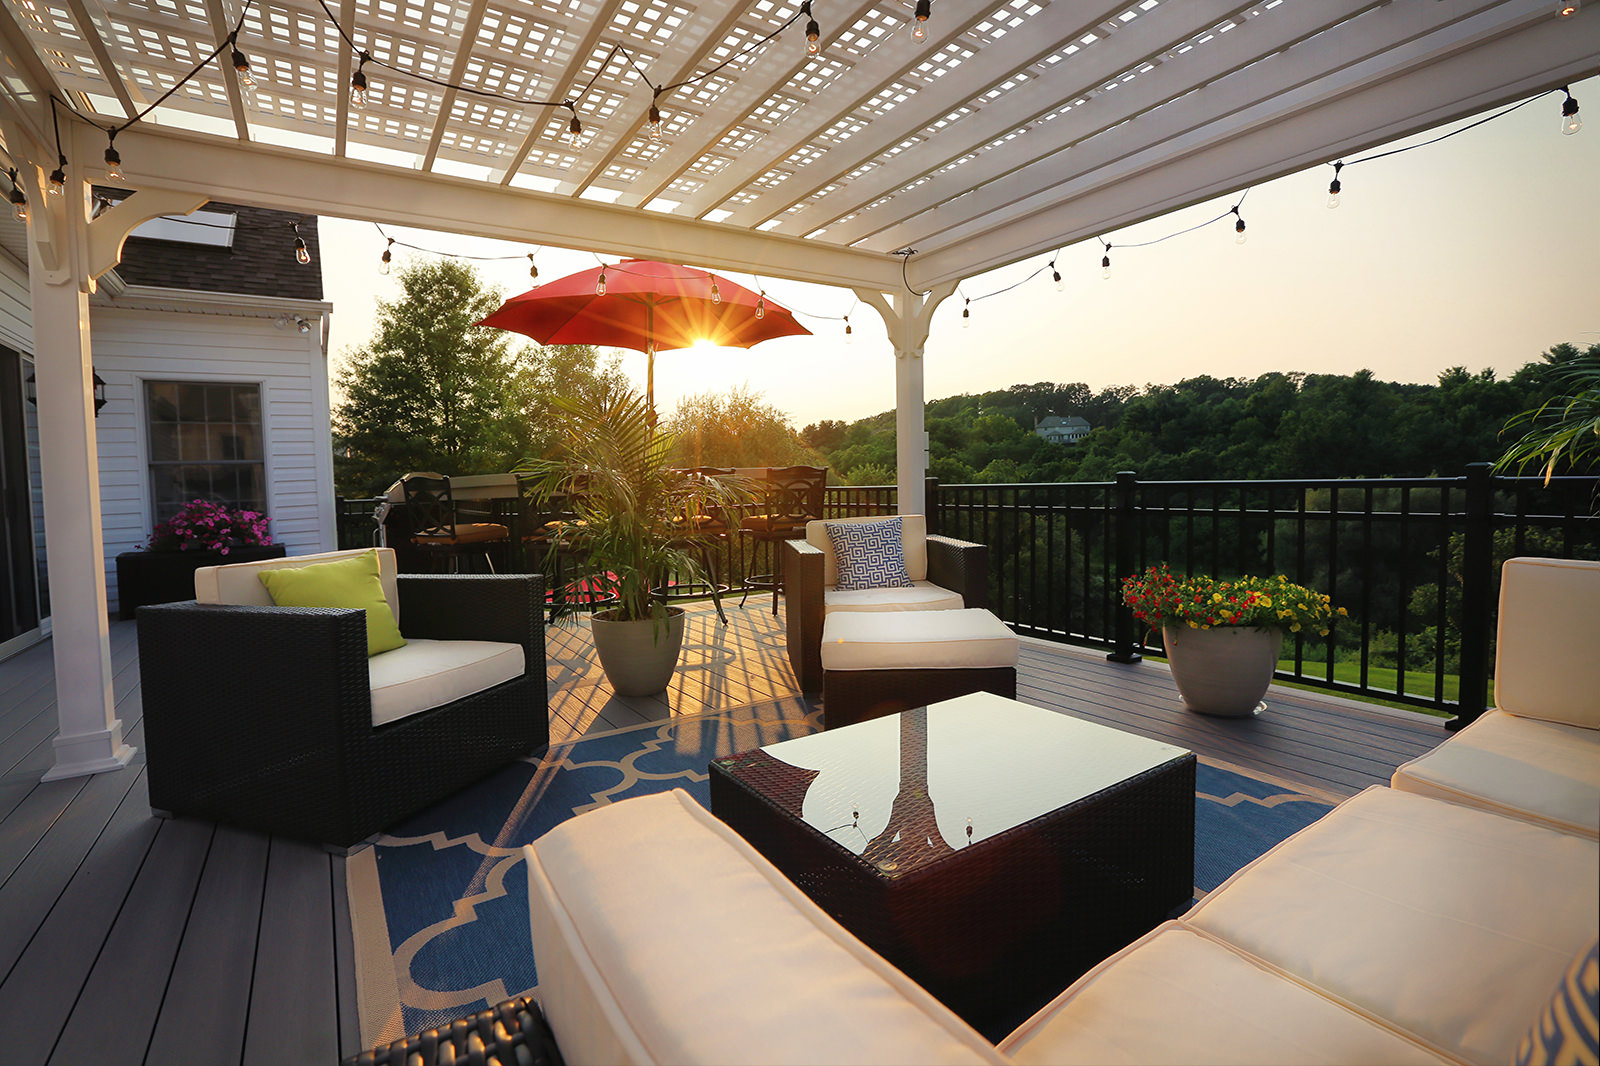 Can't you just see yourself sitting on this deck reading your favorite book or sipping your favorite drink? This picture screams pure relaxation.